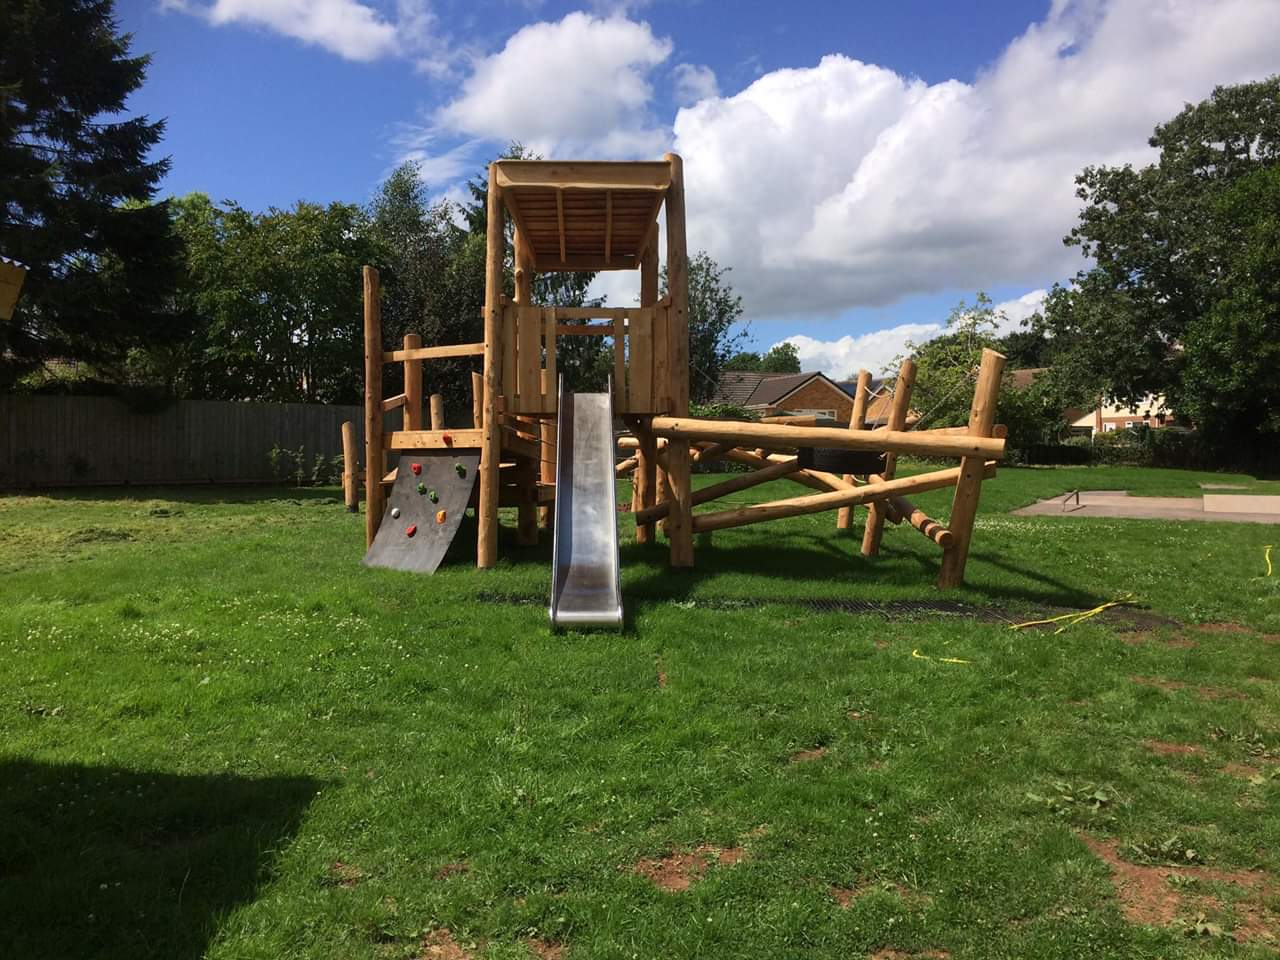 Sampford Peverell Play Park